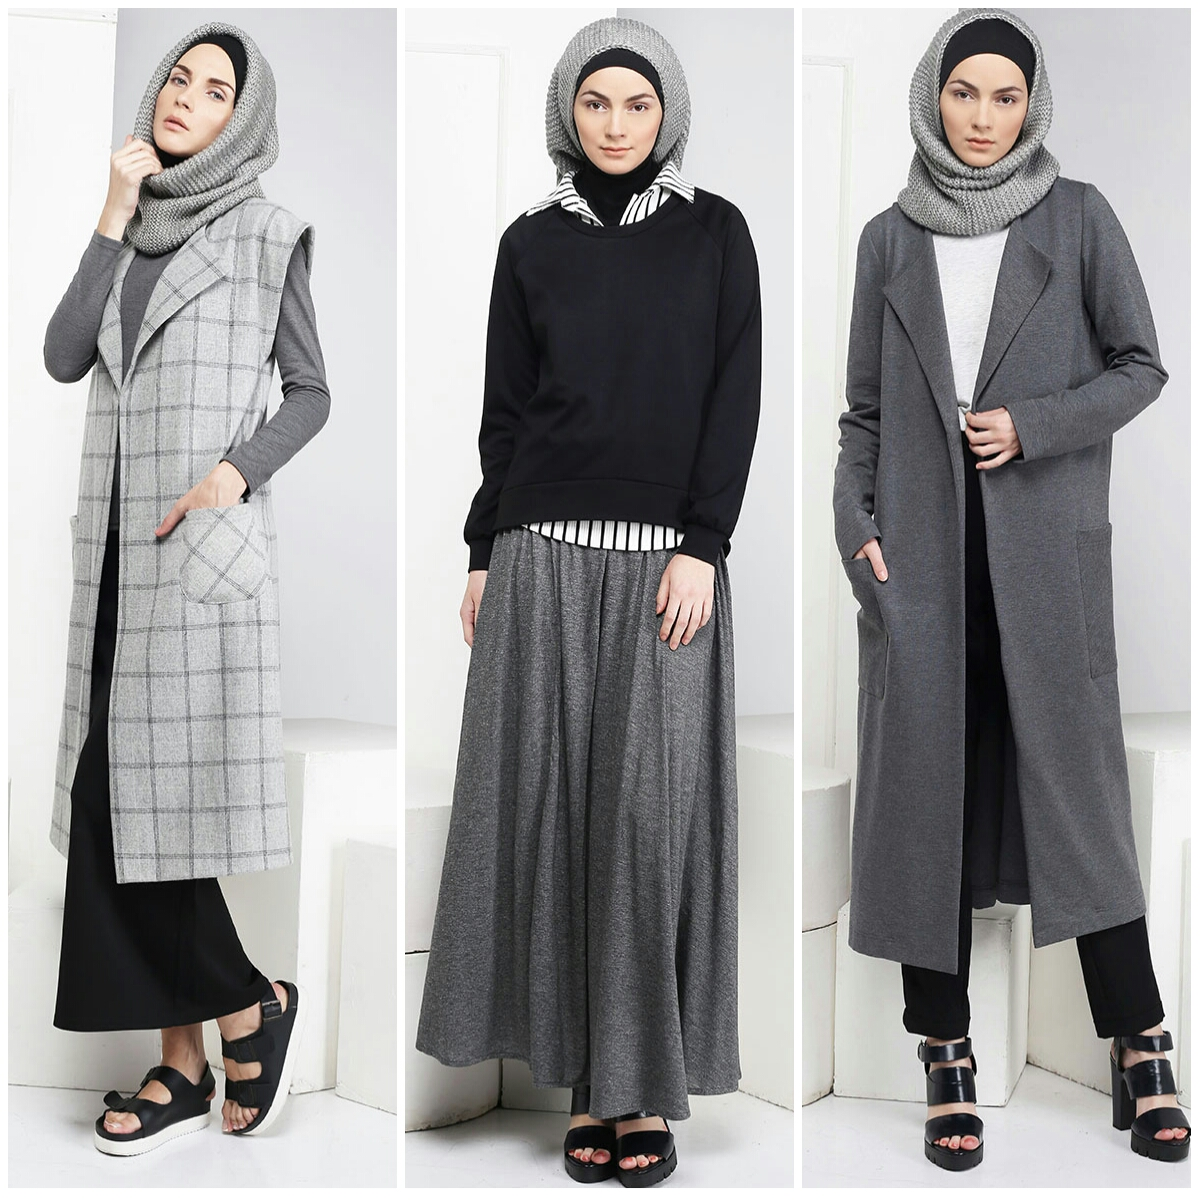 Rani Hatta Is On Our Radar With Her Beautifully Crafted Minimalist Modest Fashion Designs Read